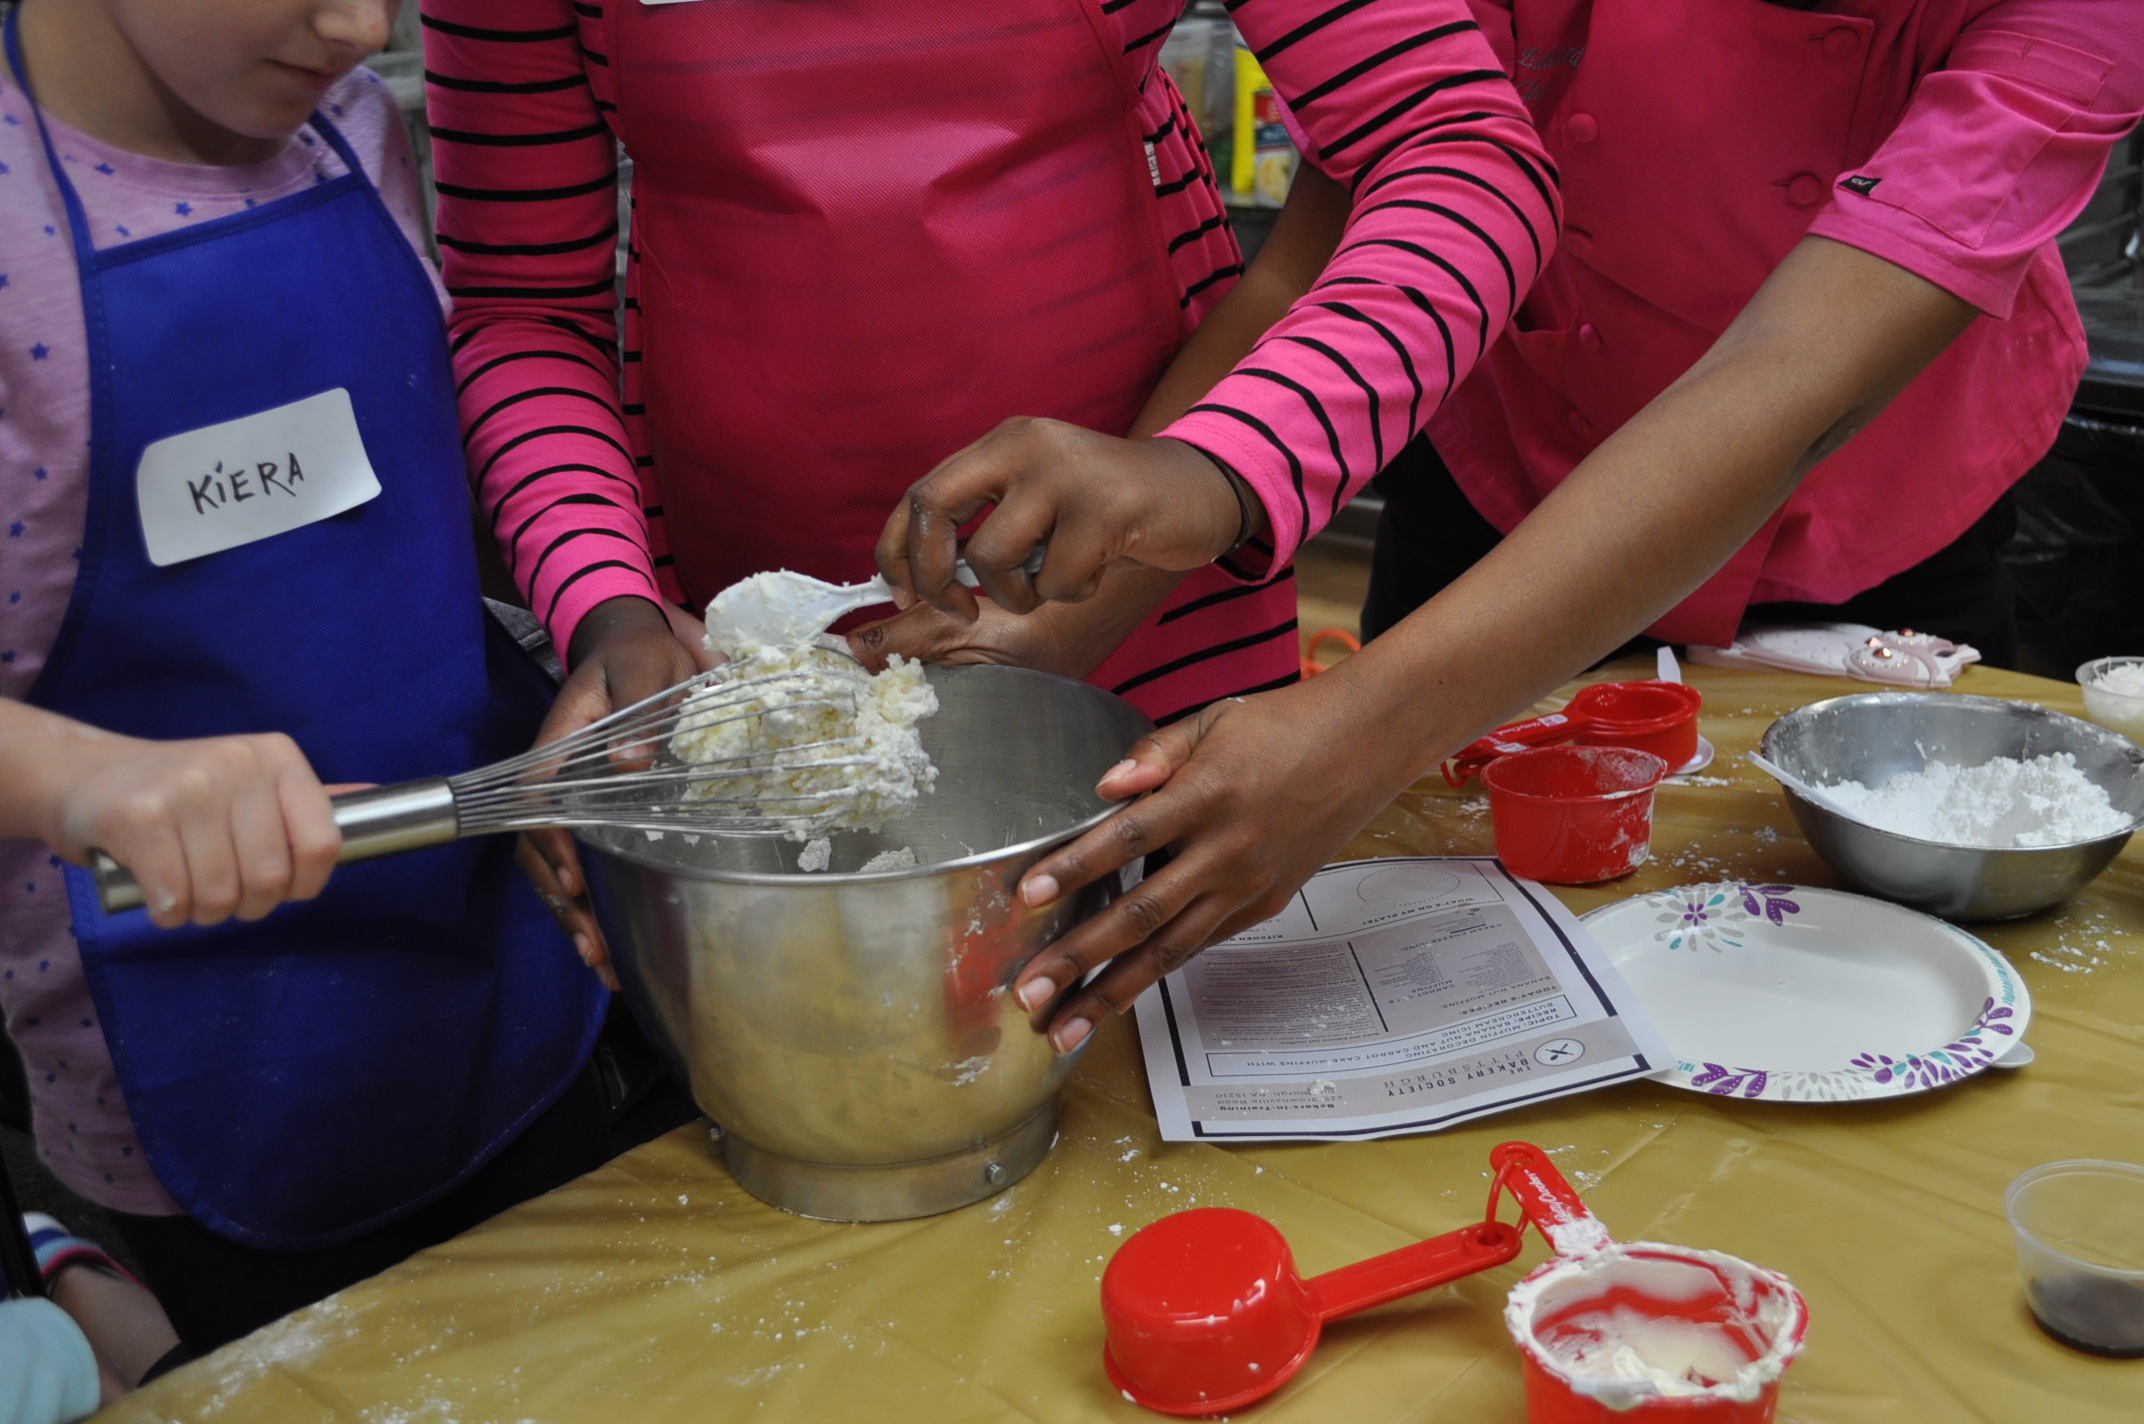 Two children scoop icing off of a whisk into a metal bowl, the instructor leans over the help